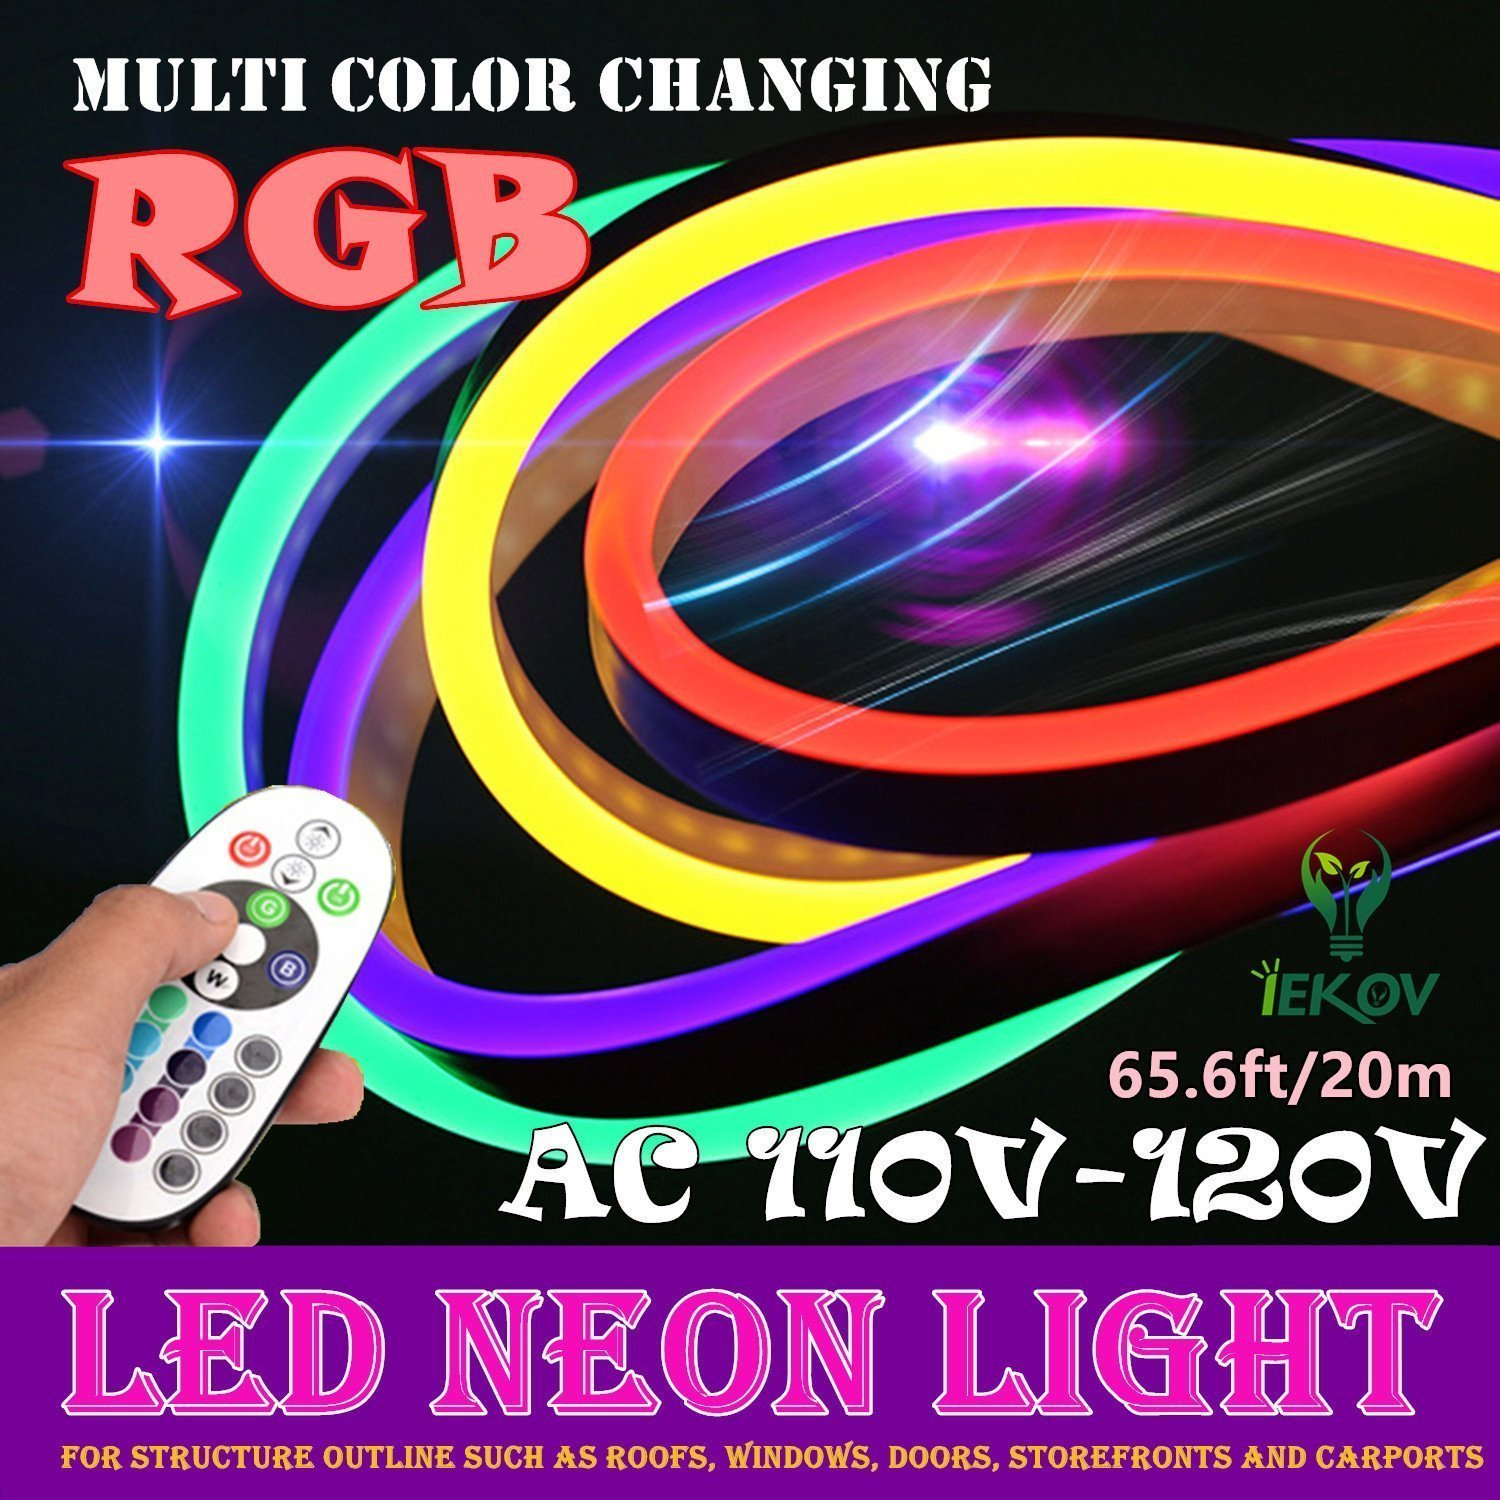 LED NEON LIGHT, IEKOV AC 110-120V Flexible RGB LED Neon Light Strip, 60 LEDs/M, Waterproof, Multi Color Changing 5050 SMD LED Rope Light + Remote Controller for Party Decoration (65.6ft/ 20m) by IEKOV (Image #2)